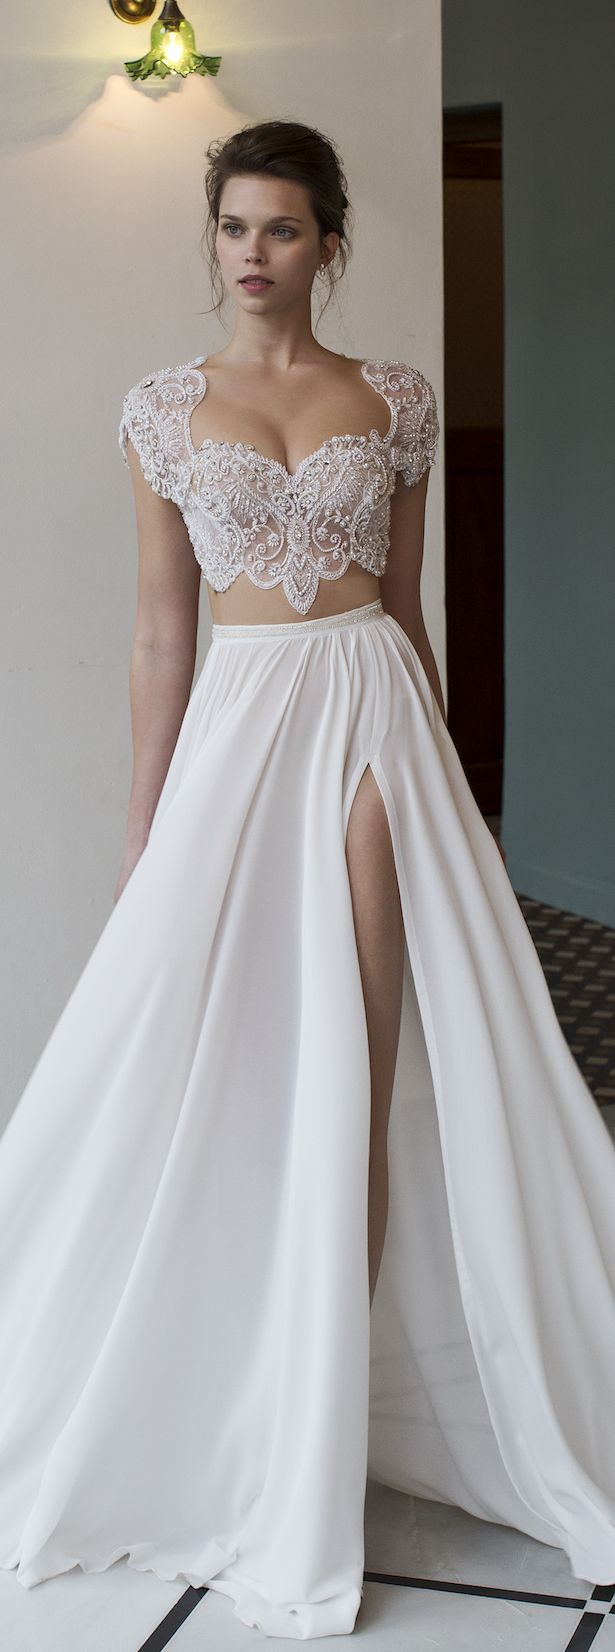 Sexy two-piece bridal gown with lace top | Bridal Trends: Two- Piece Wedding Dresses via @BelleMagazine  #vestidodenovia | #trajesdenovio | vestidos de novia para gorditas | vestidos de novia cortos  http://amzn.to/29aGZWo Women, Men and Kids Outfit Ideas on our website at 7ootd.com #ootd #7ootd